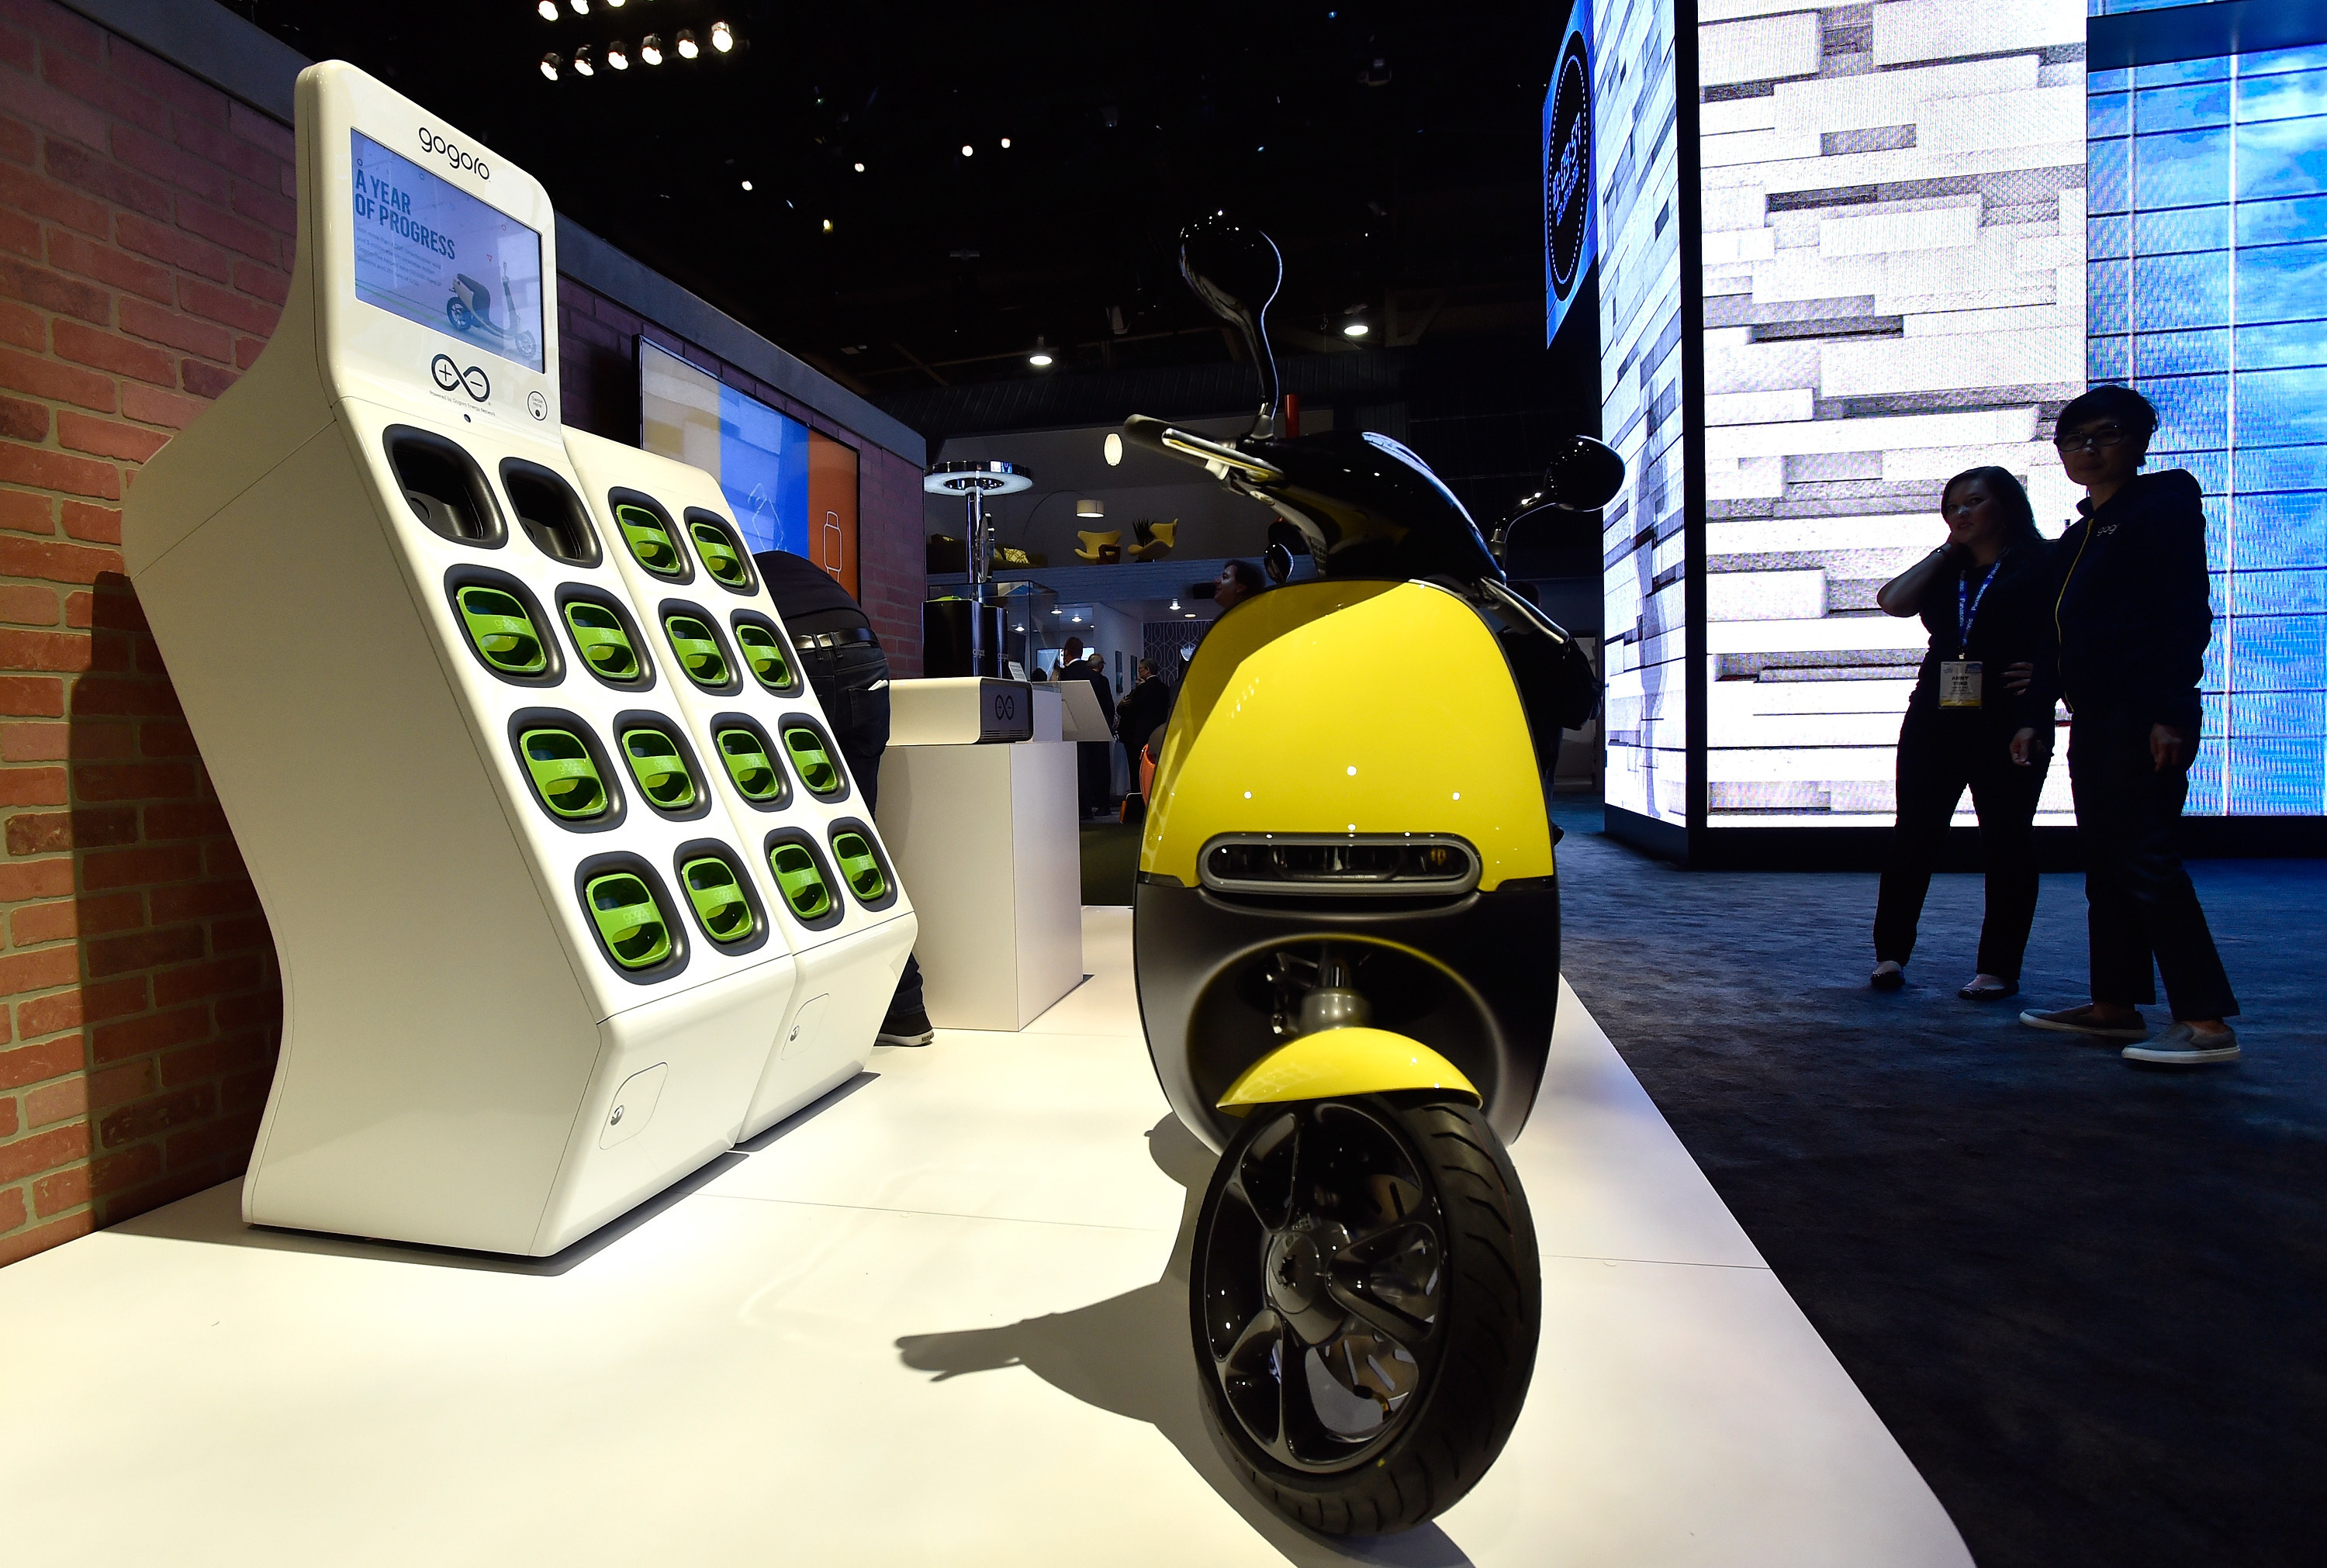 The Gogoro Smartscooter is displayed at the Panasonic booth at CES 2016 at the Las Vegas Convention Center on January 6, 2016 in Las Vegas, Nevada. The all electric scooter operates on portable shared batteries, which users switch out at various locations throughout a community.